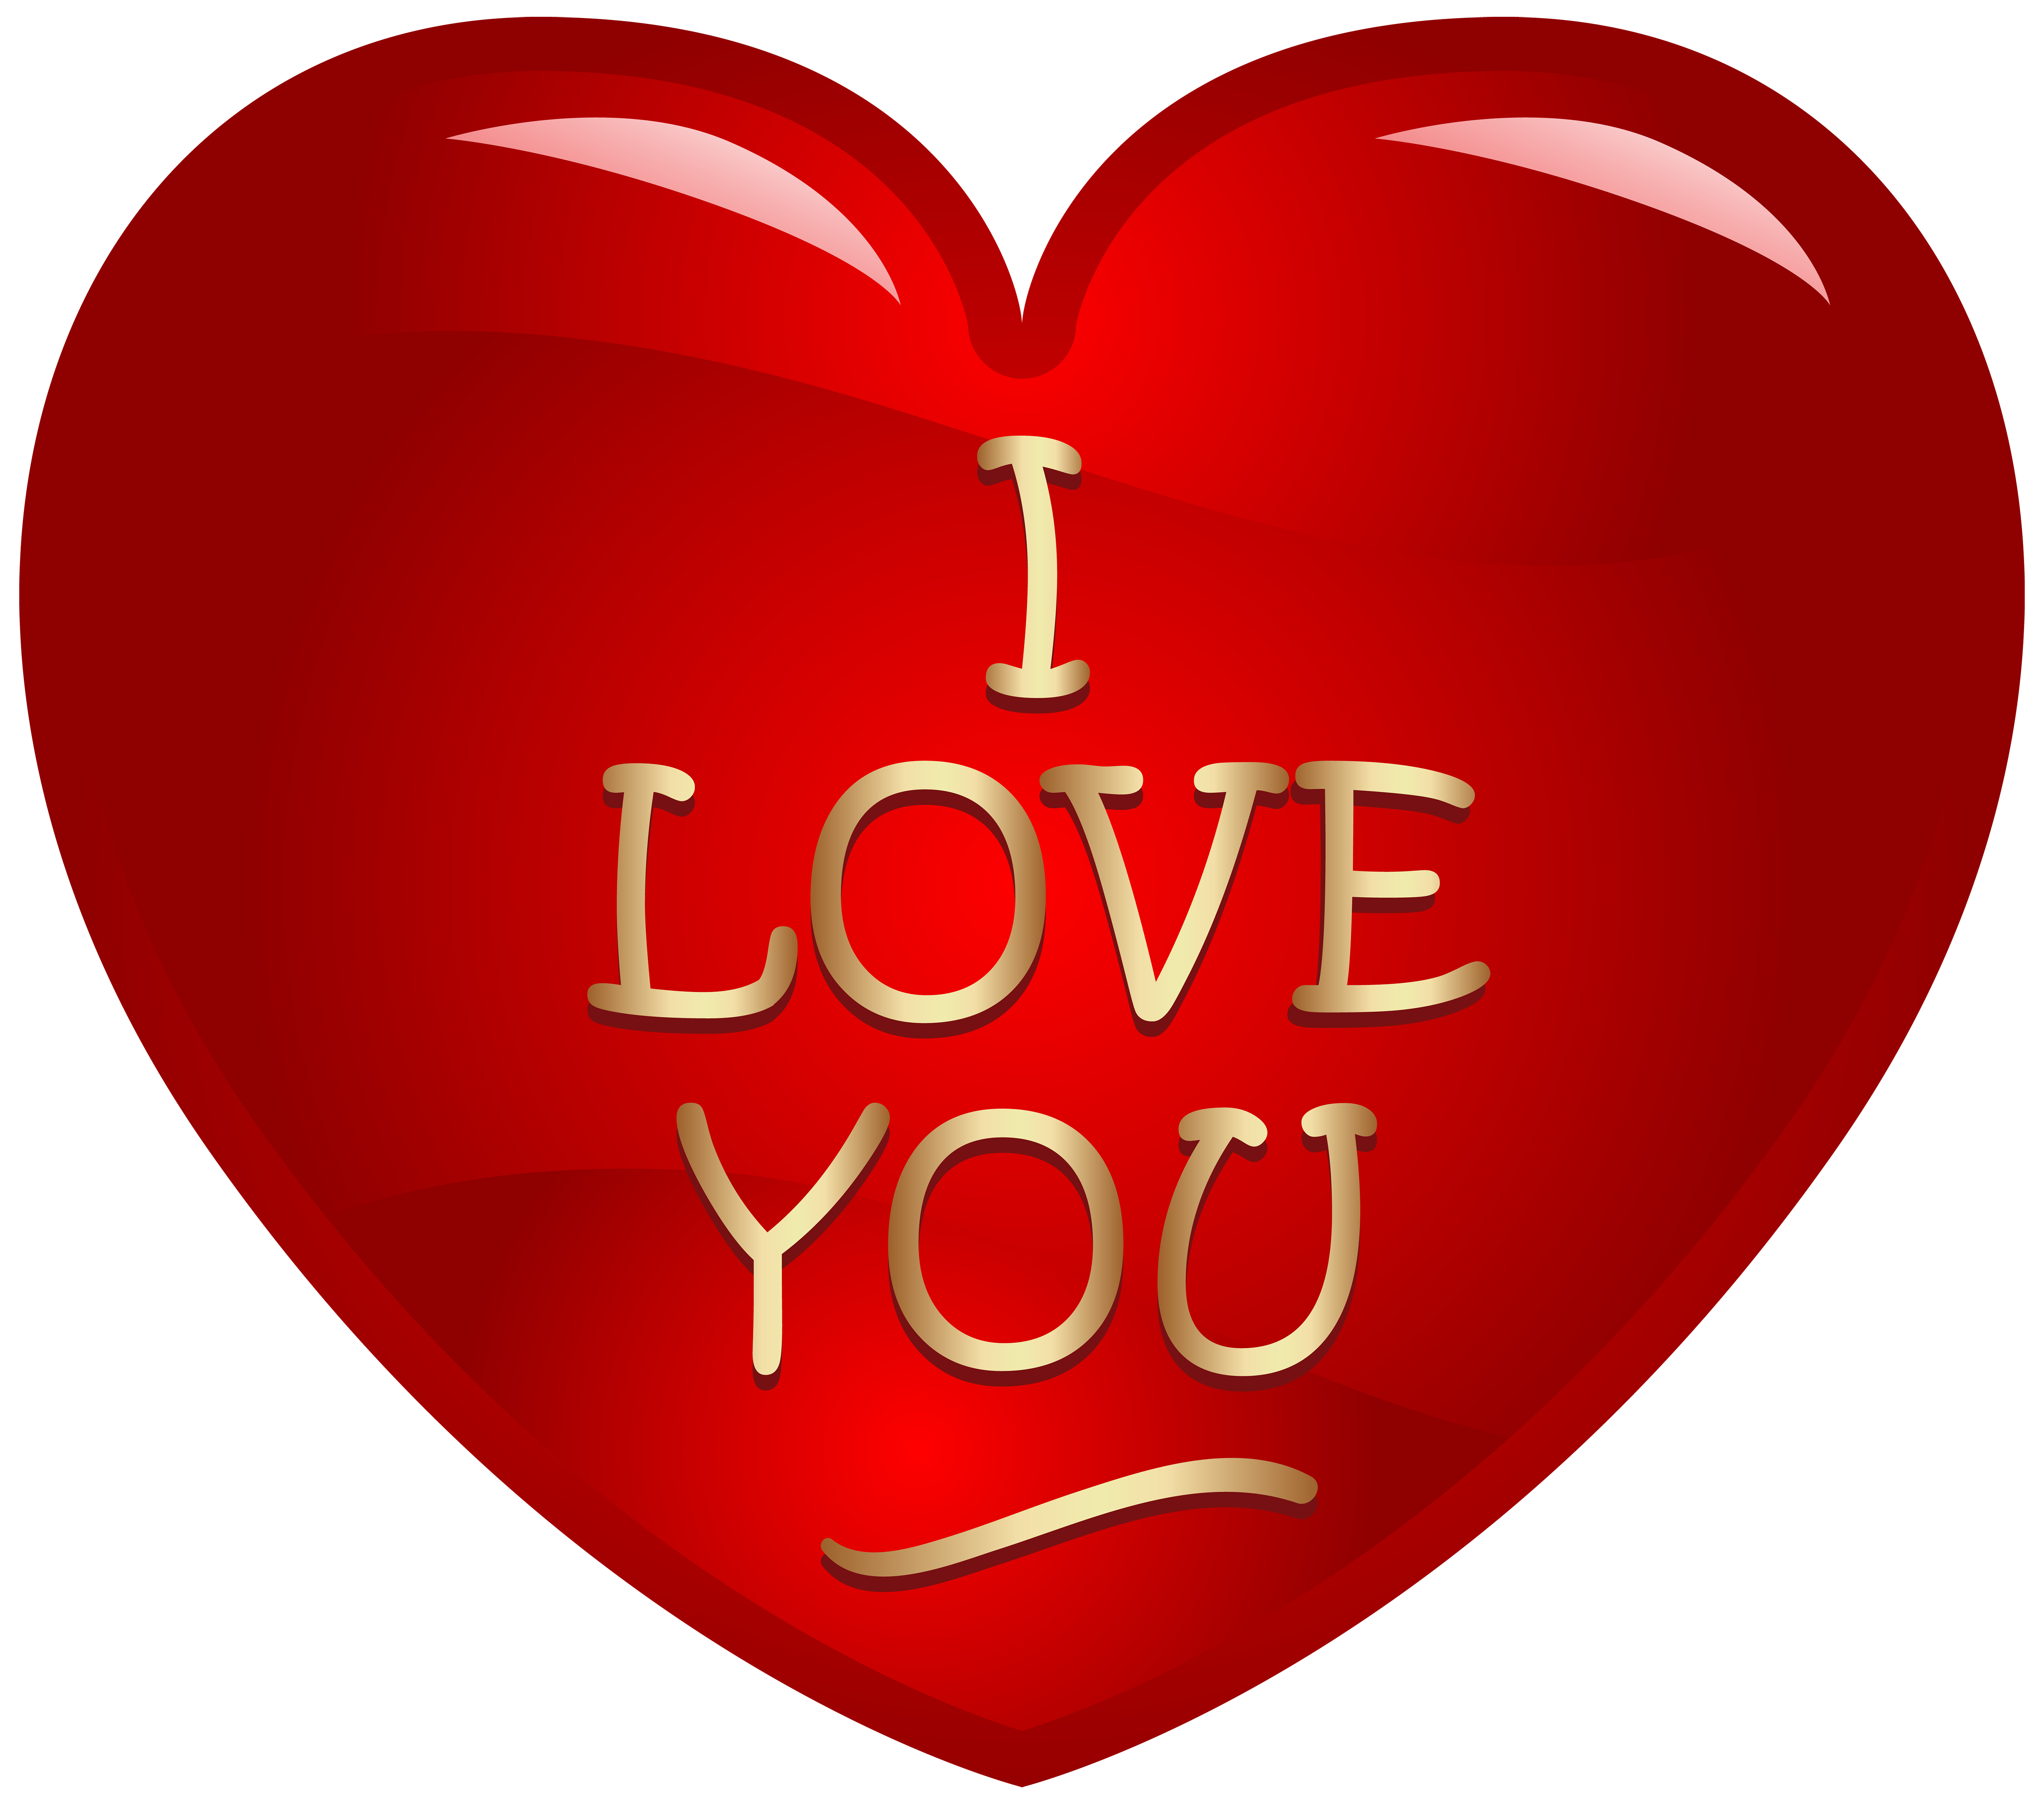 I Love You With Heart Images - I Love U PNG HD